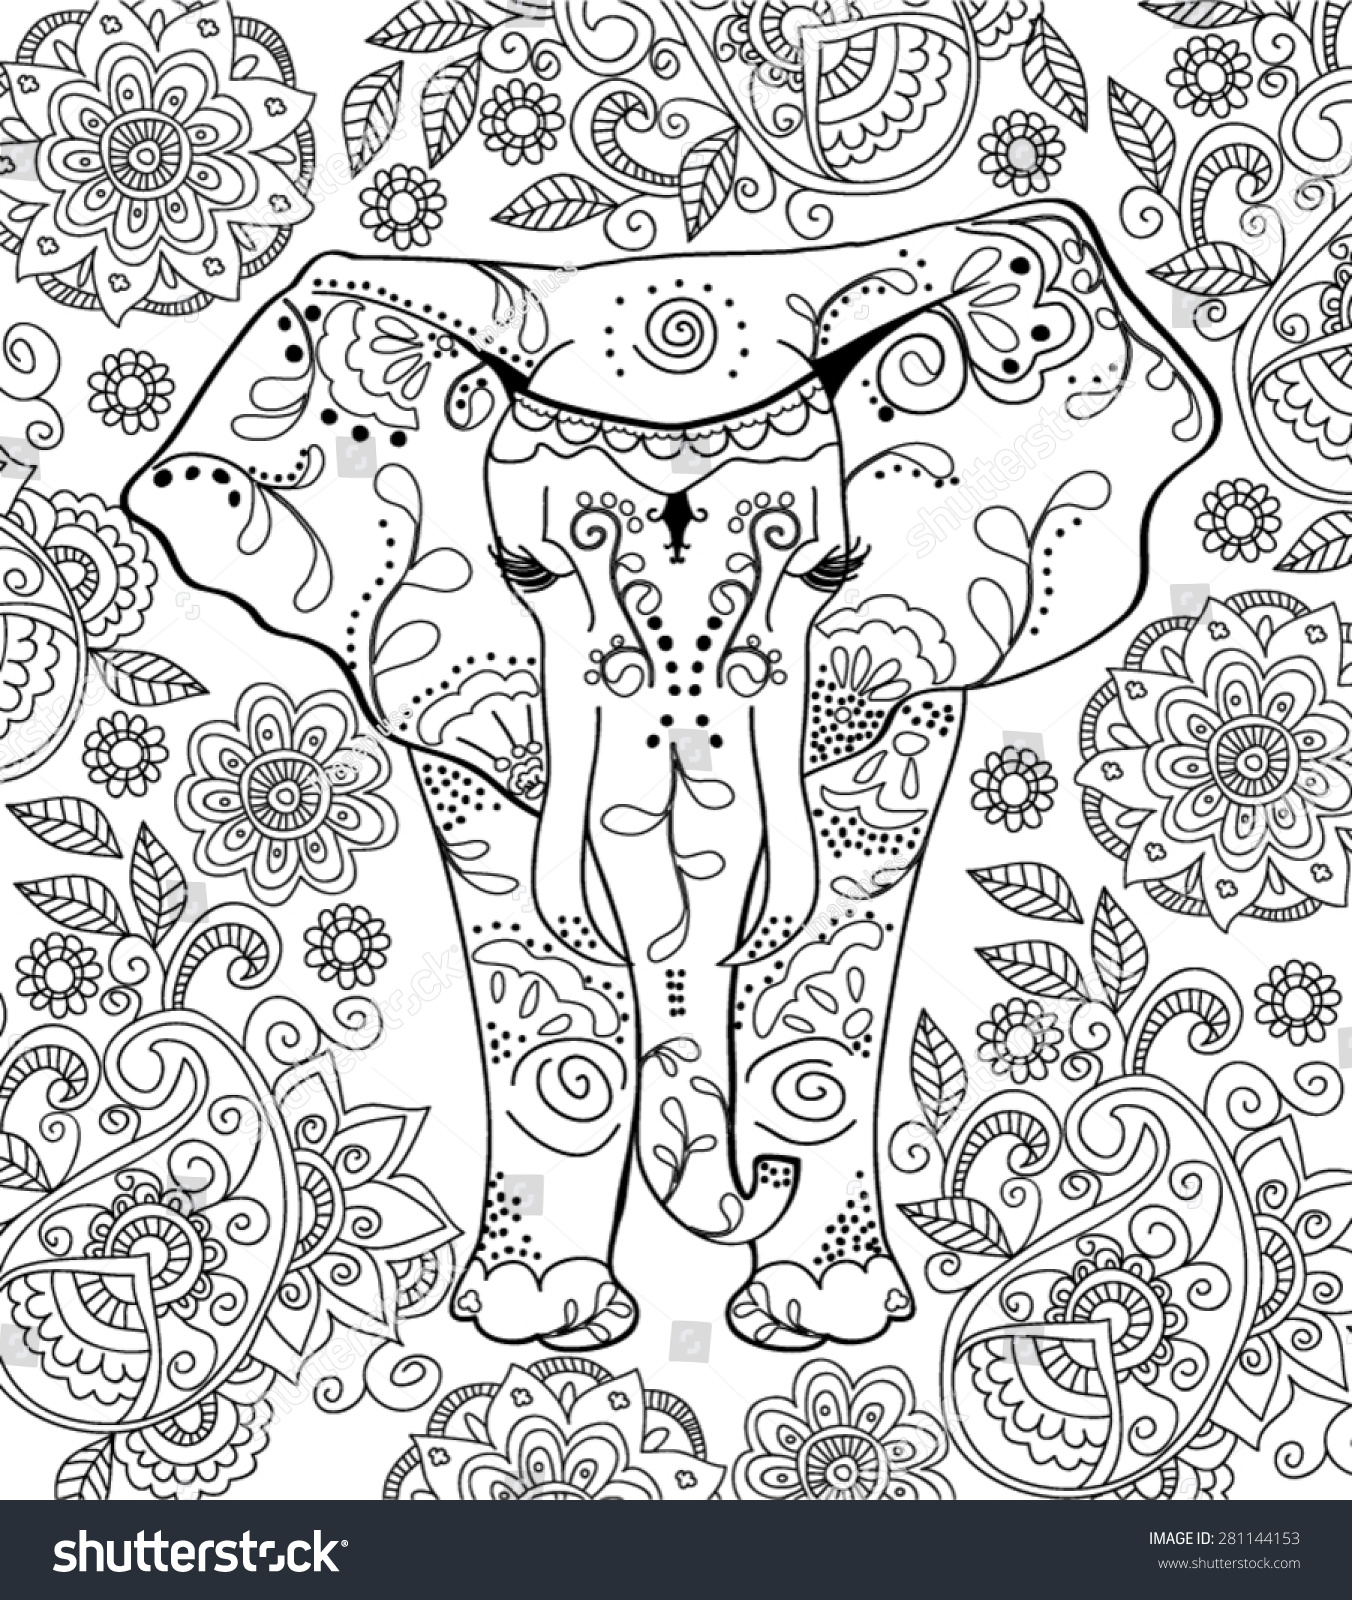 Hand Drawn Elephant Coloring Page Stock Vector 281144153 - Shutterstock